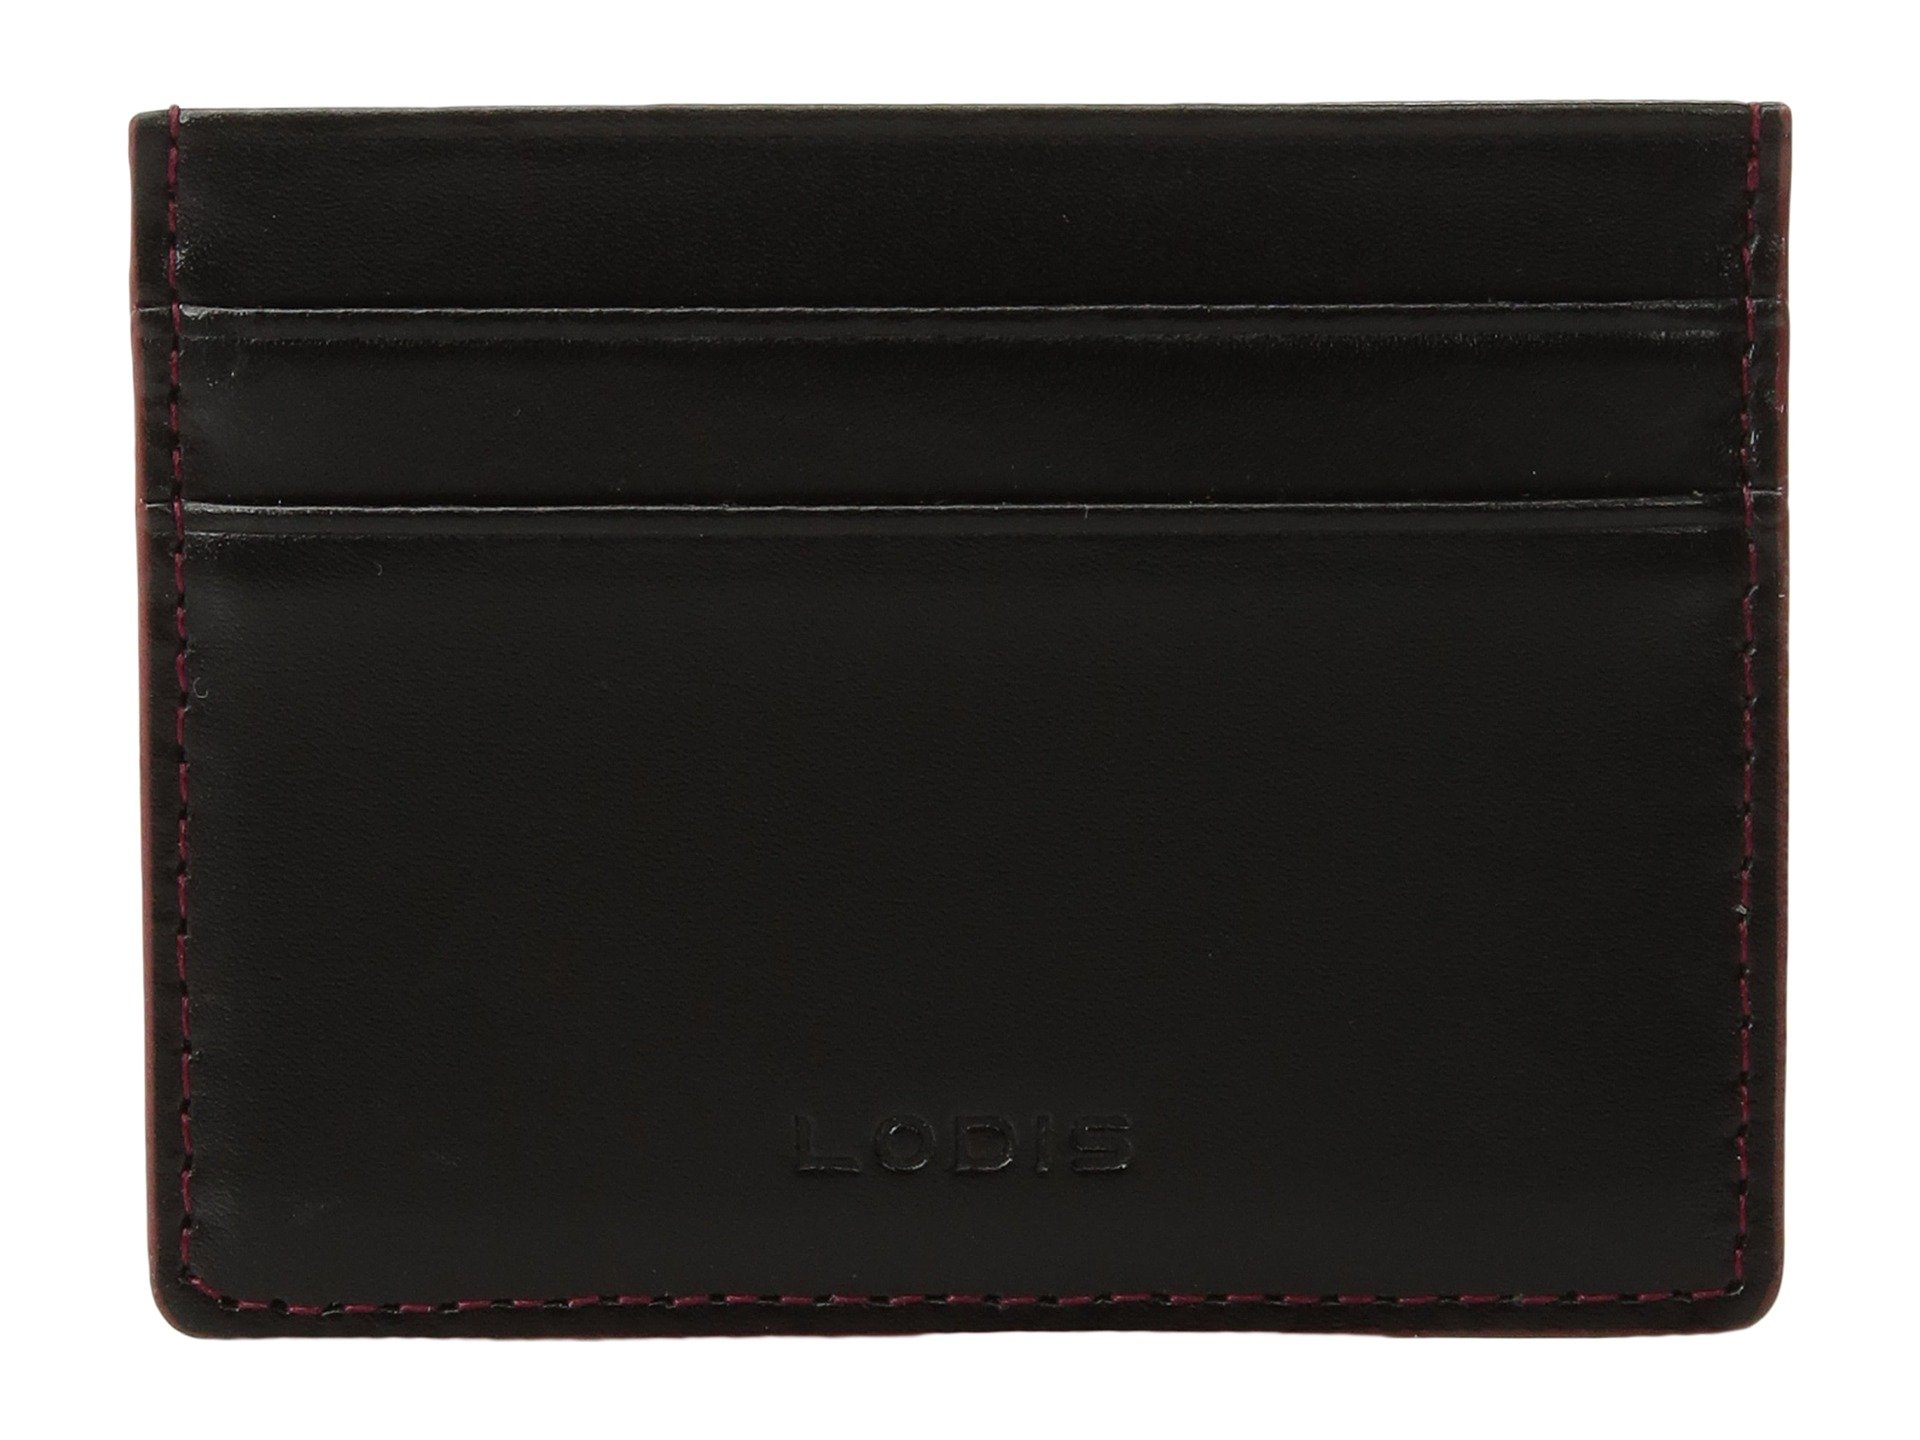 Lodis Audrey RFID Mini ID Card Case, Black/Red